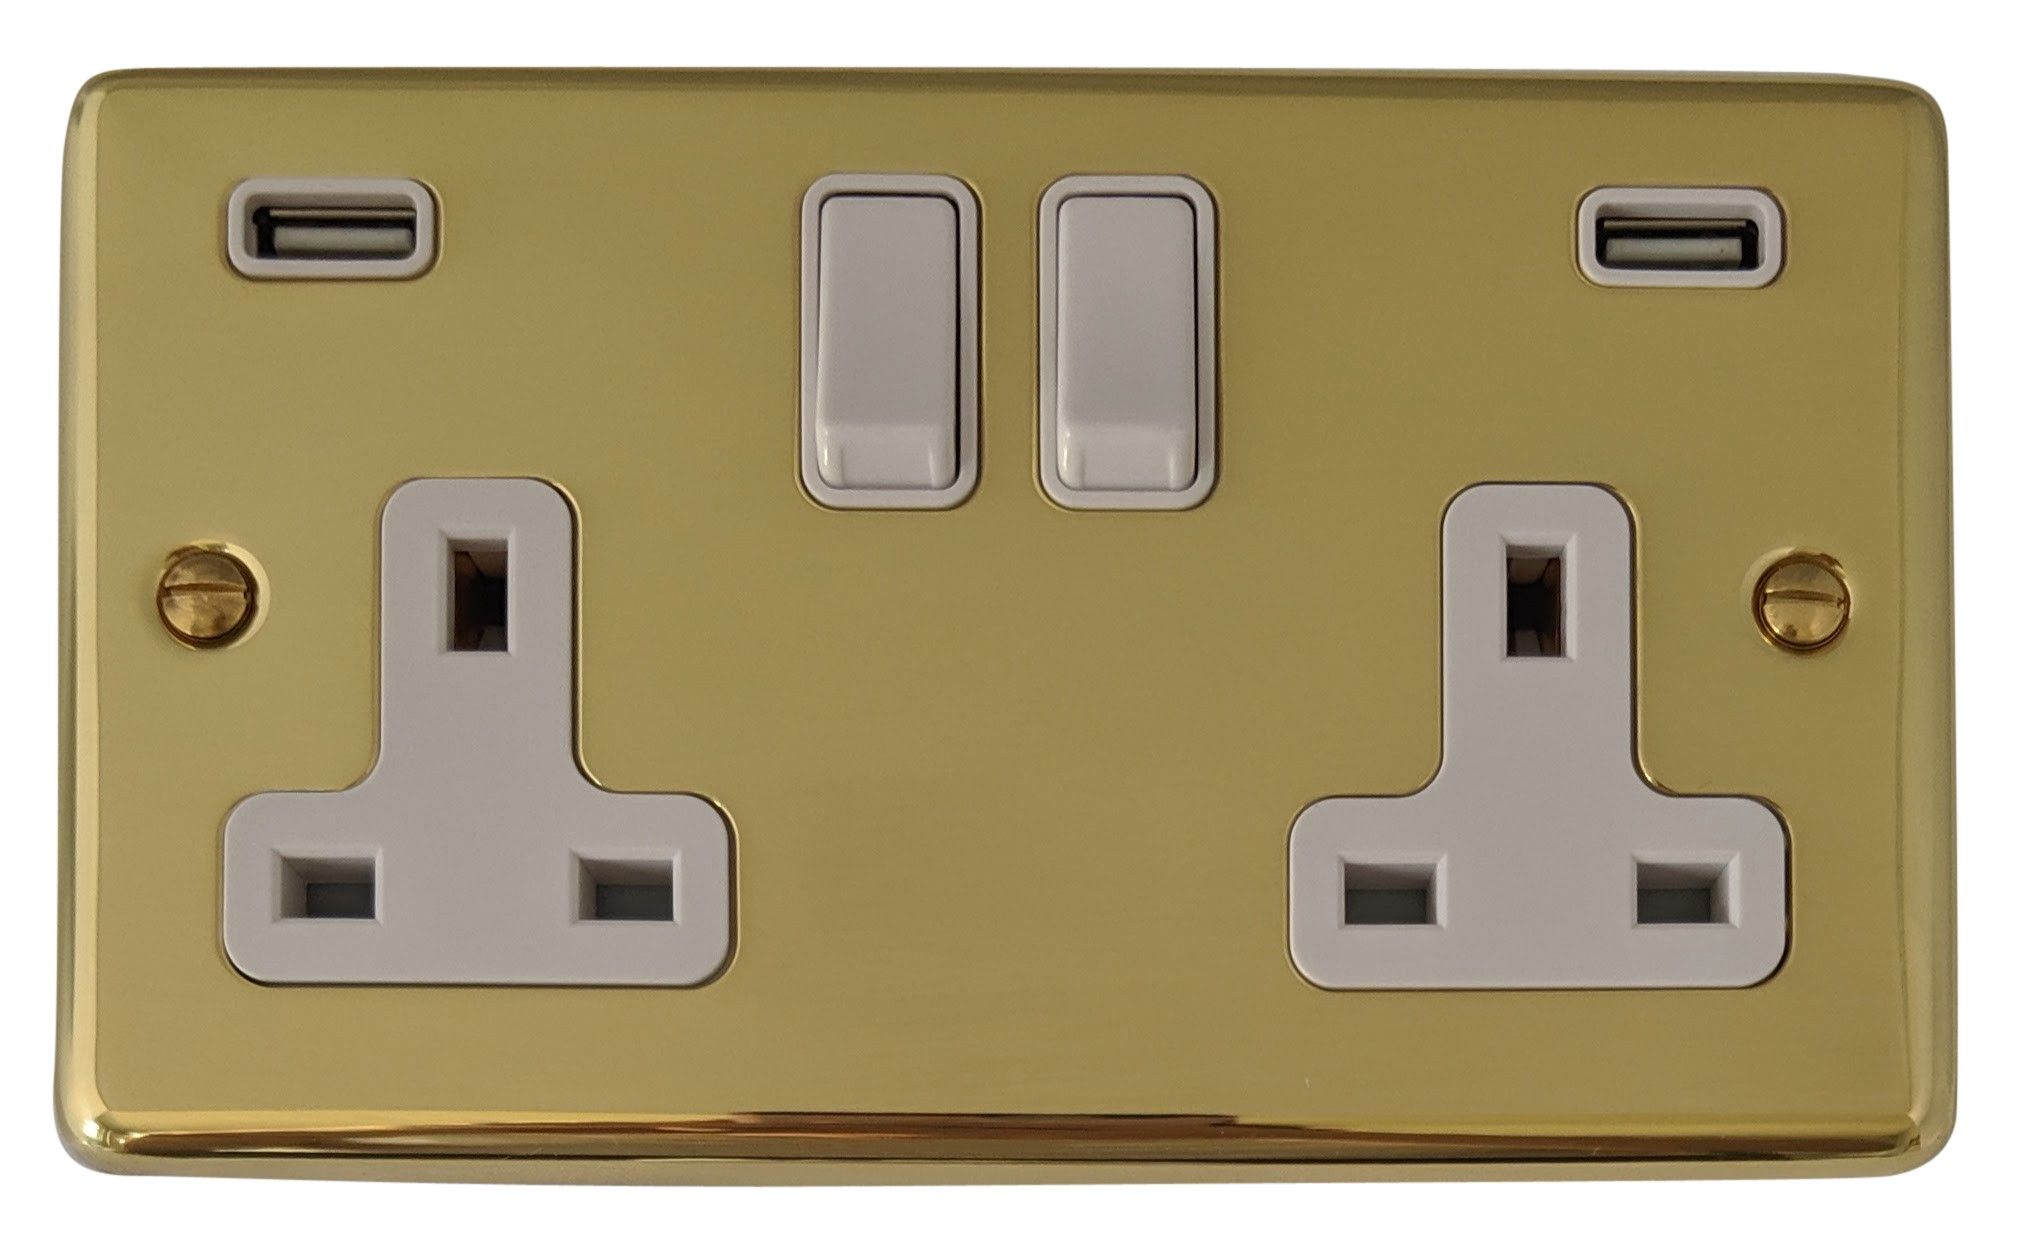 G&H CB910W Standard Plate Polished Brass 2 Gang Double 13A Switched Plug Socket 2.1A USB